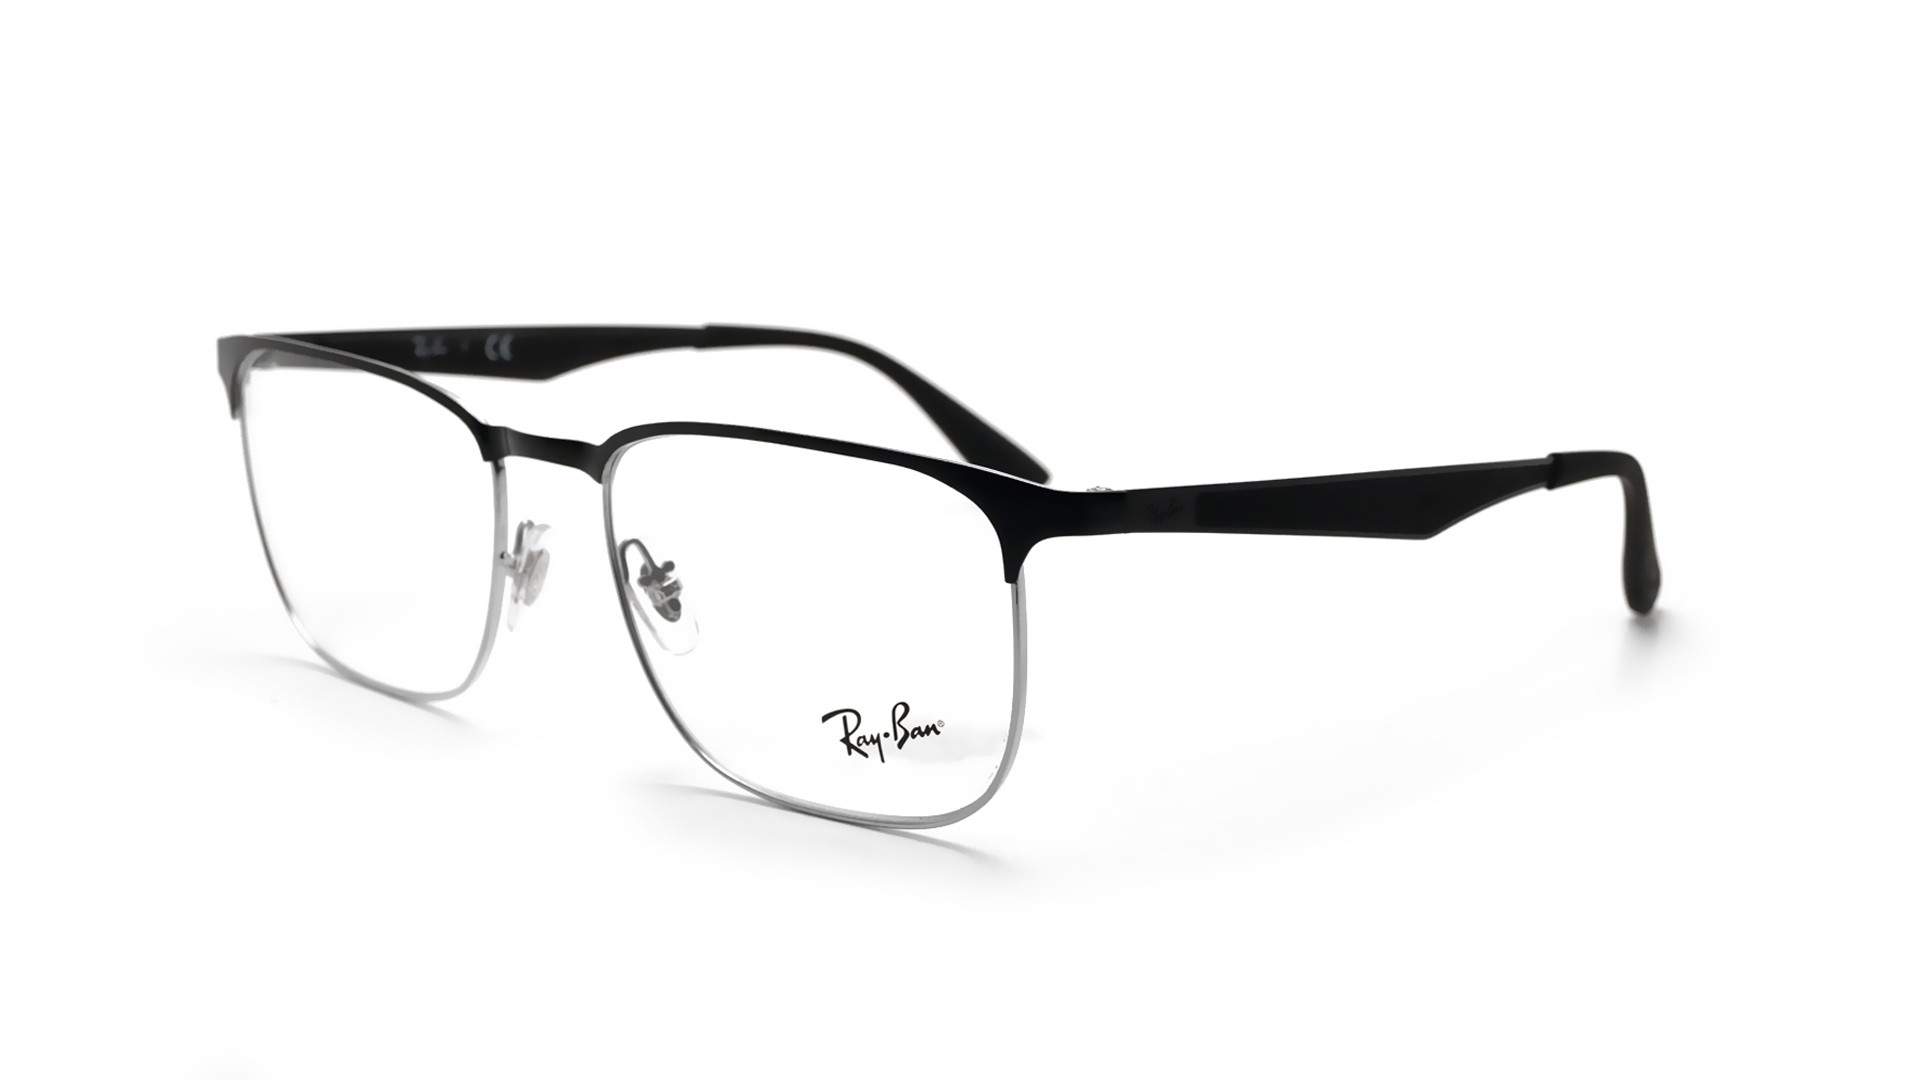 8bdef0fbe9 Lunettes de vue Ray-Ban Clubmaster Black RX6363 RB6363 2861 54-18 ...